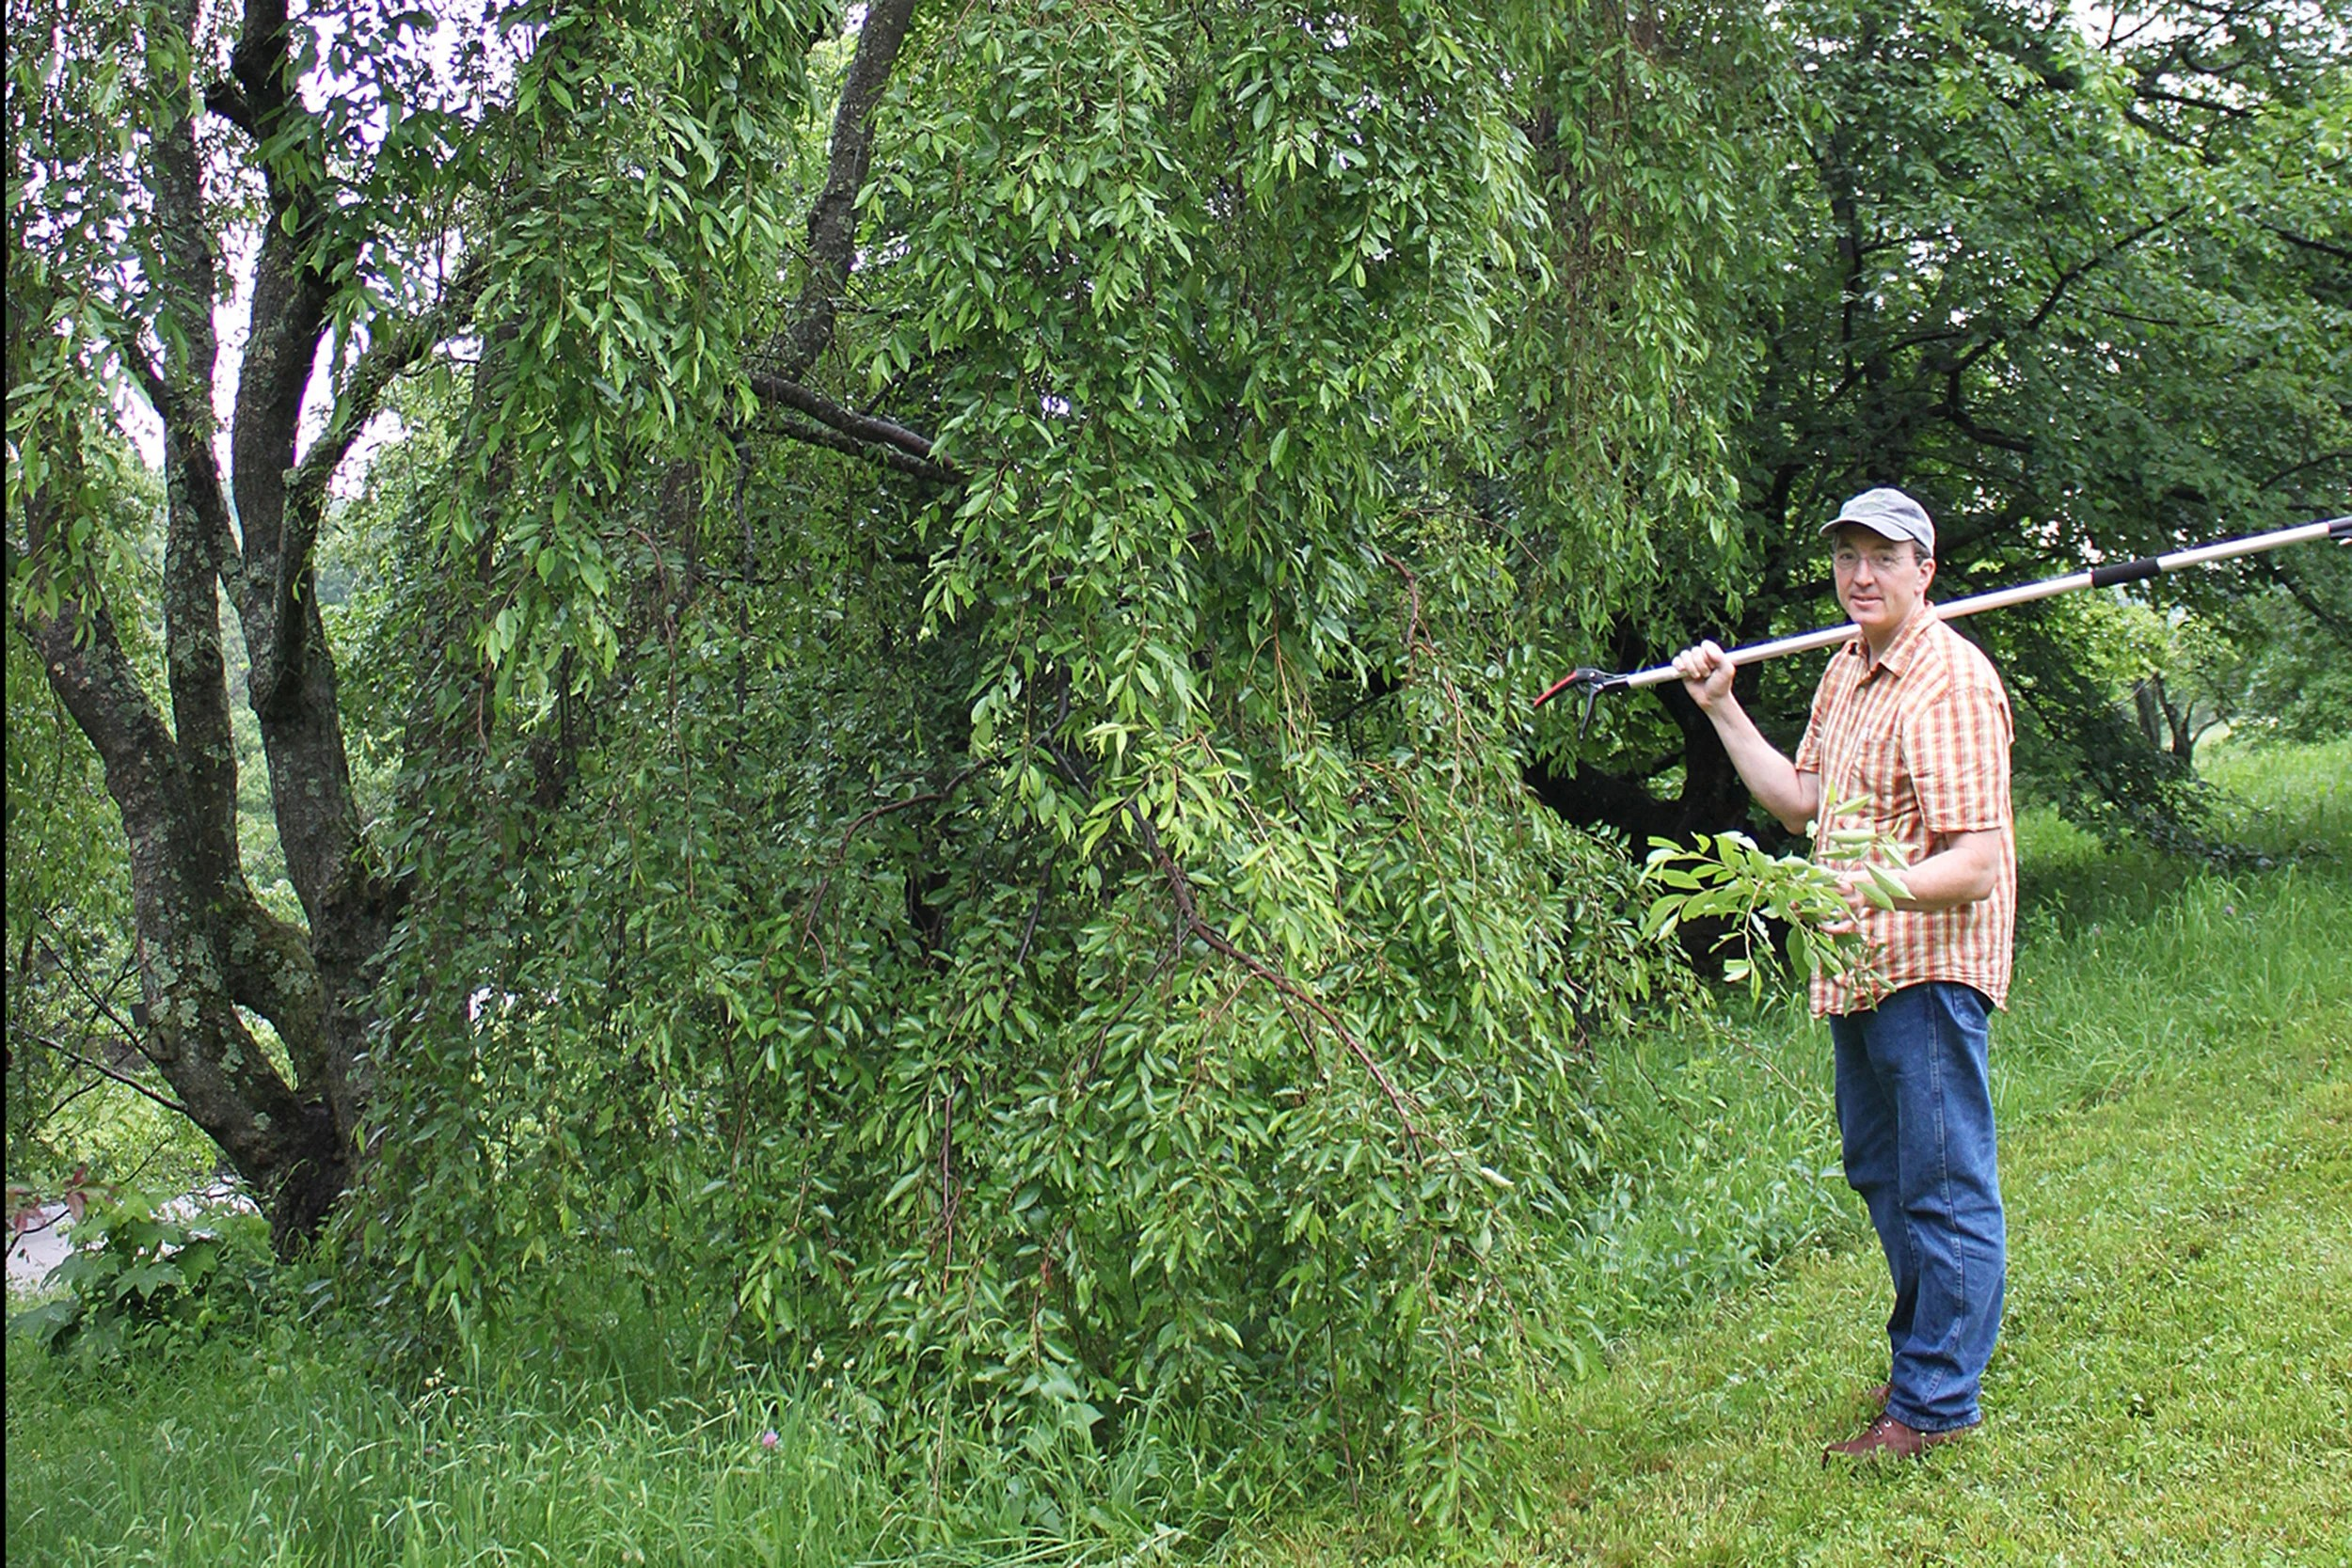 Andrew Groover, U.S. Forest Service research geneticist uses a pole pruner at the Arnold Arboretum to collect small samples of genetic material from the willows (Salix) collection